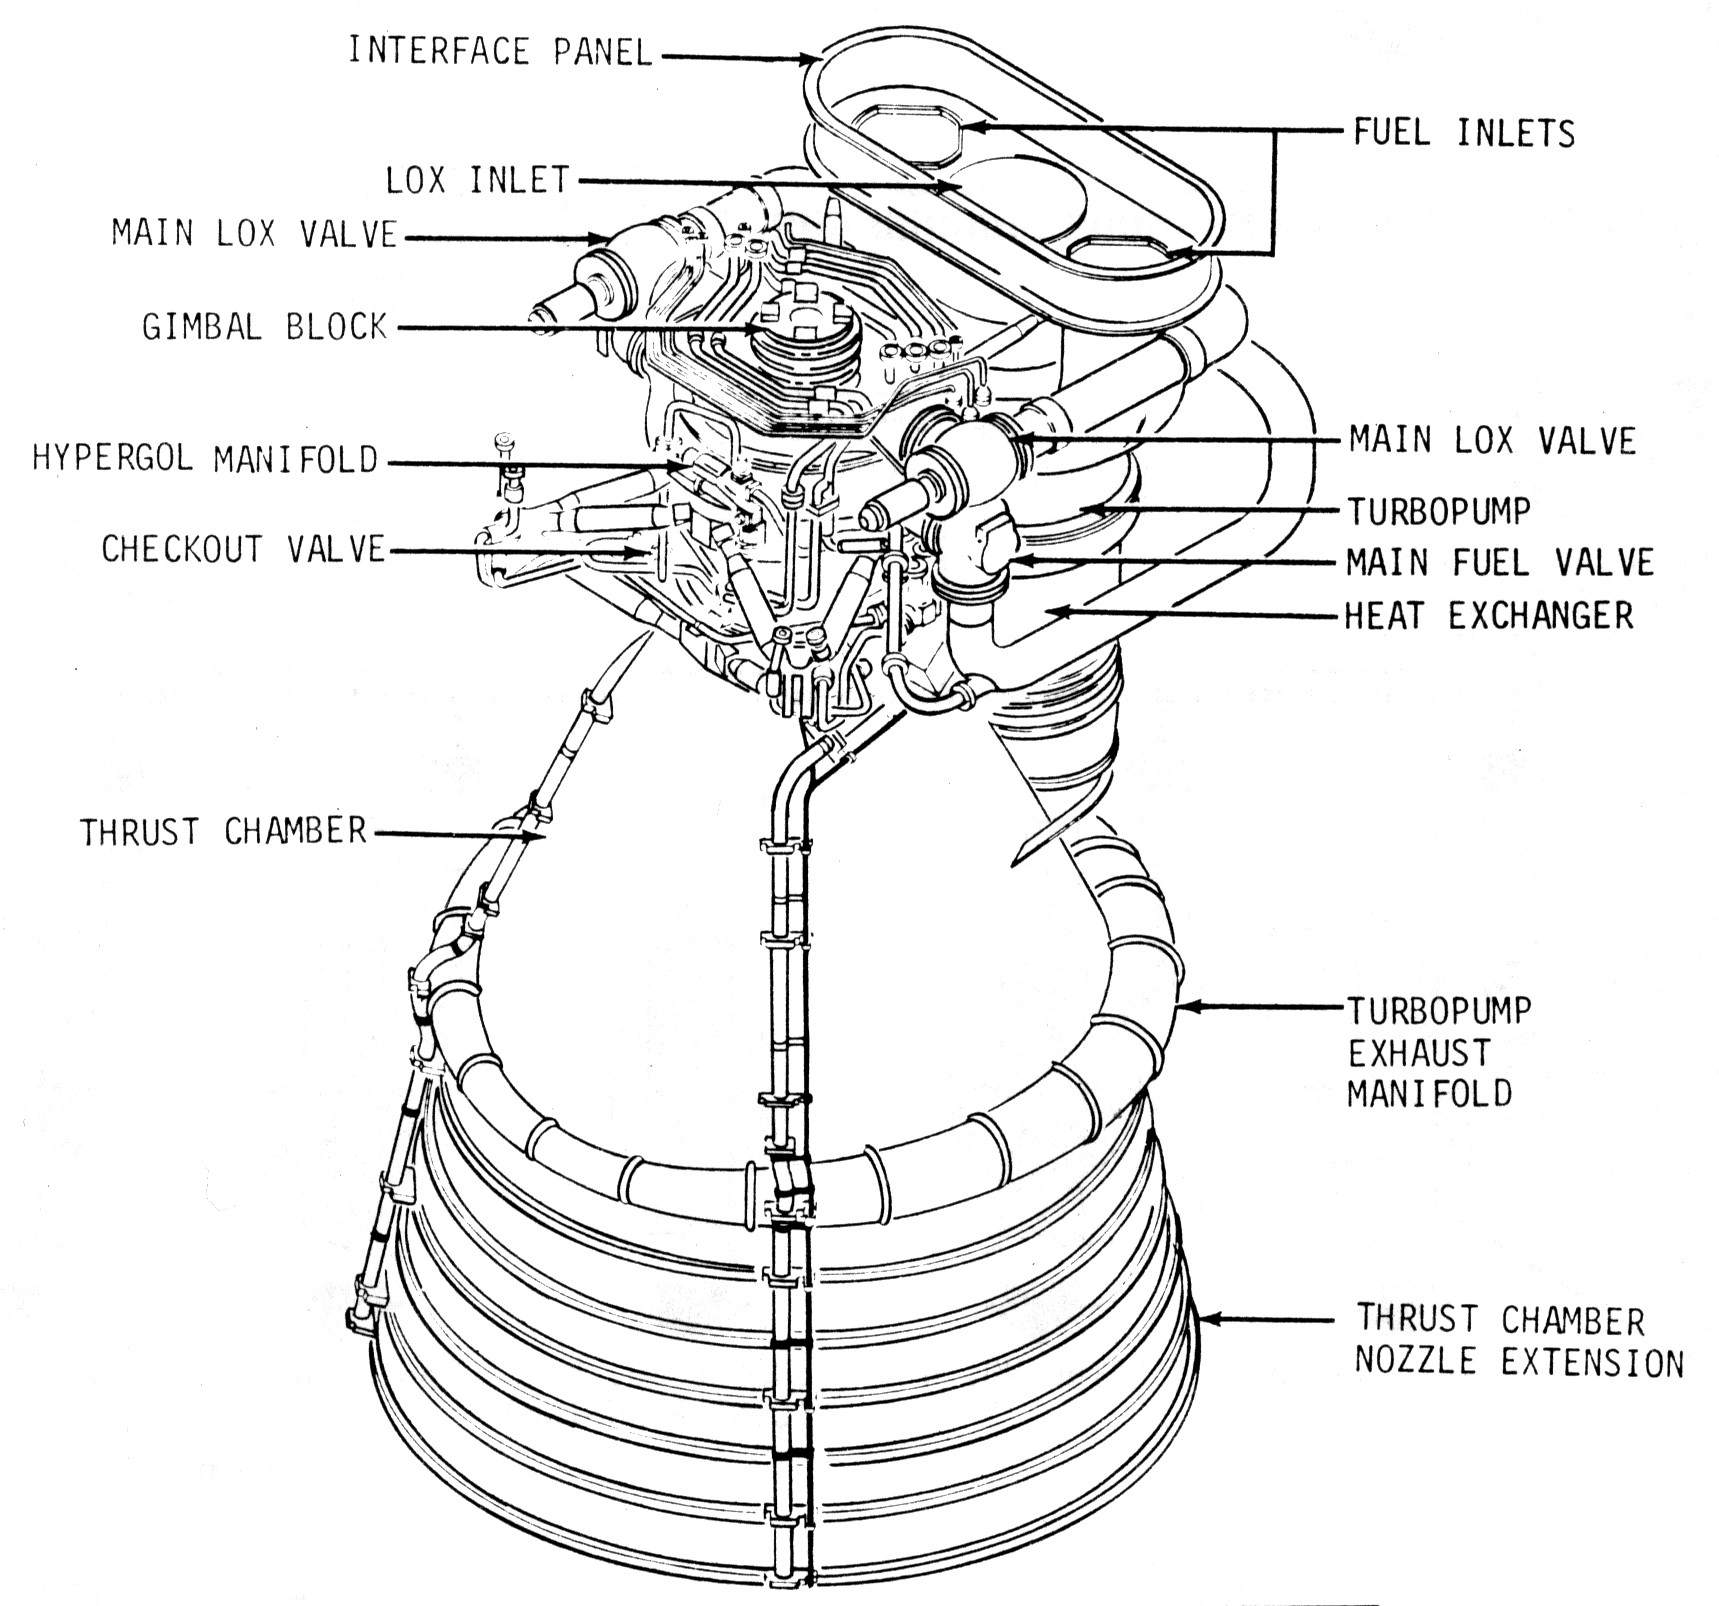 Drawing of F-1 Engine - Propulsion of the Saturn V - Awesome Stories